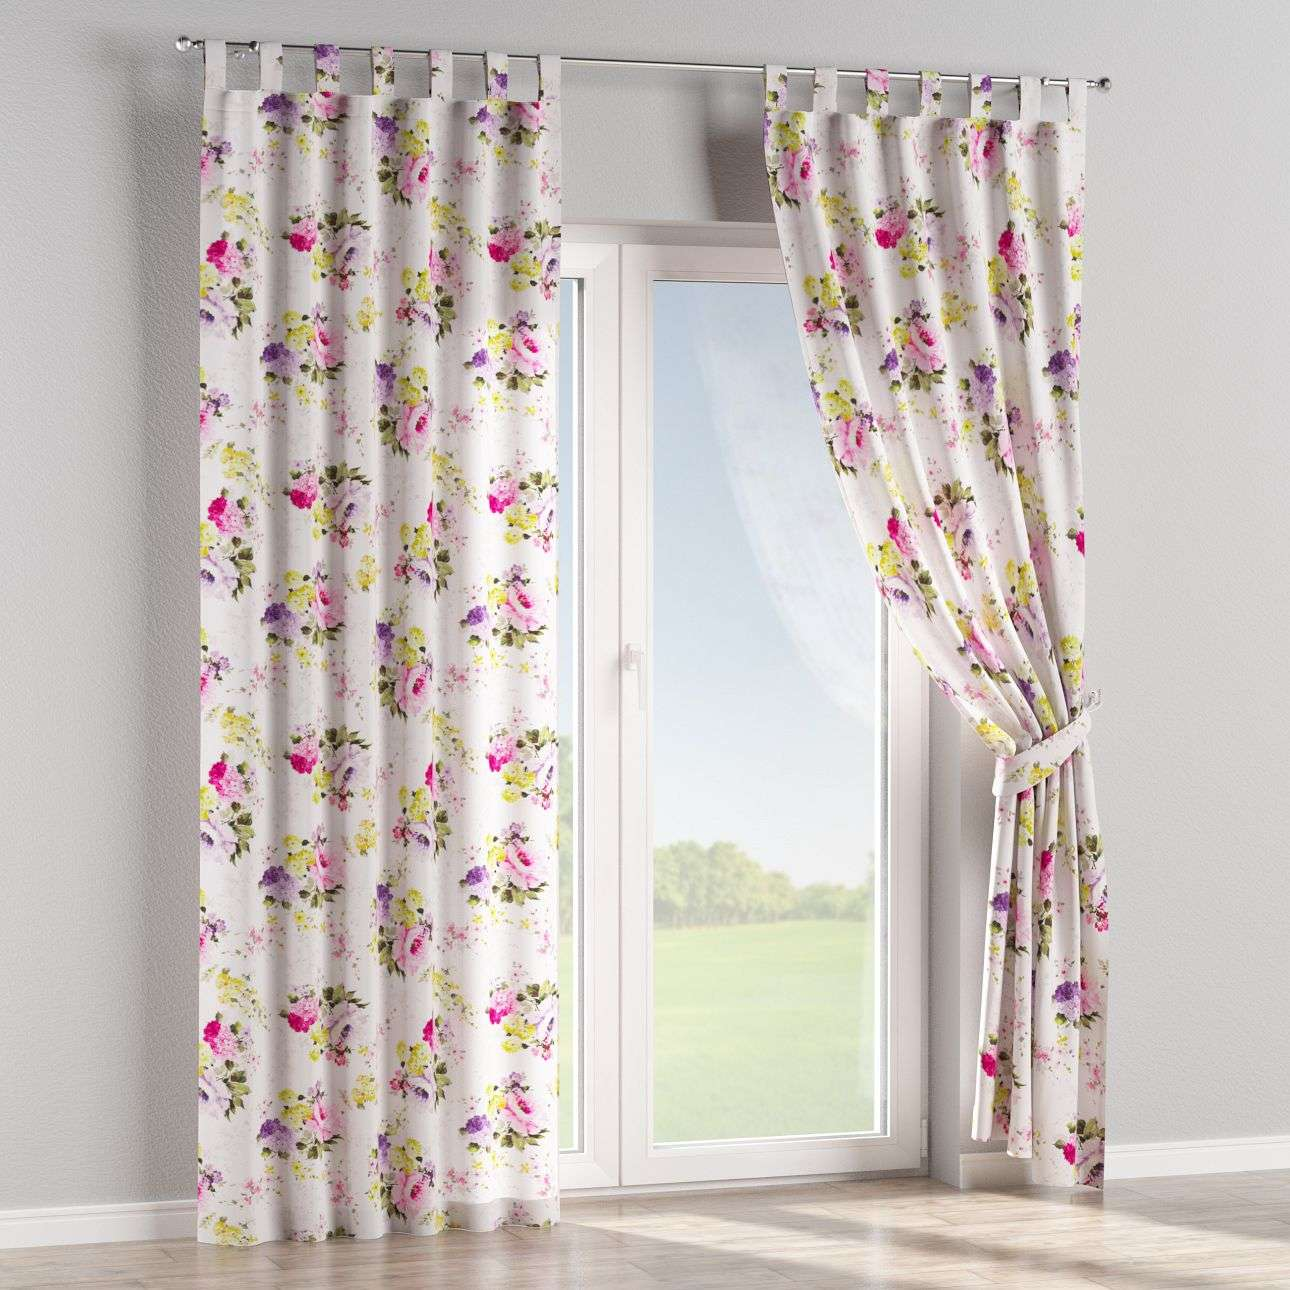 Tab top curtains in collection Monet, fabric: 140-00